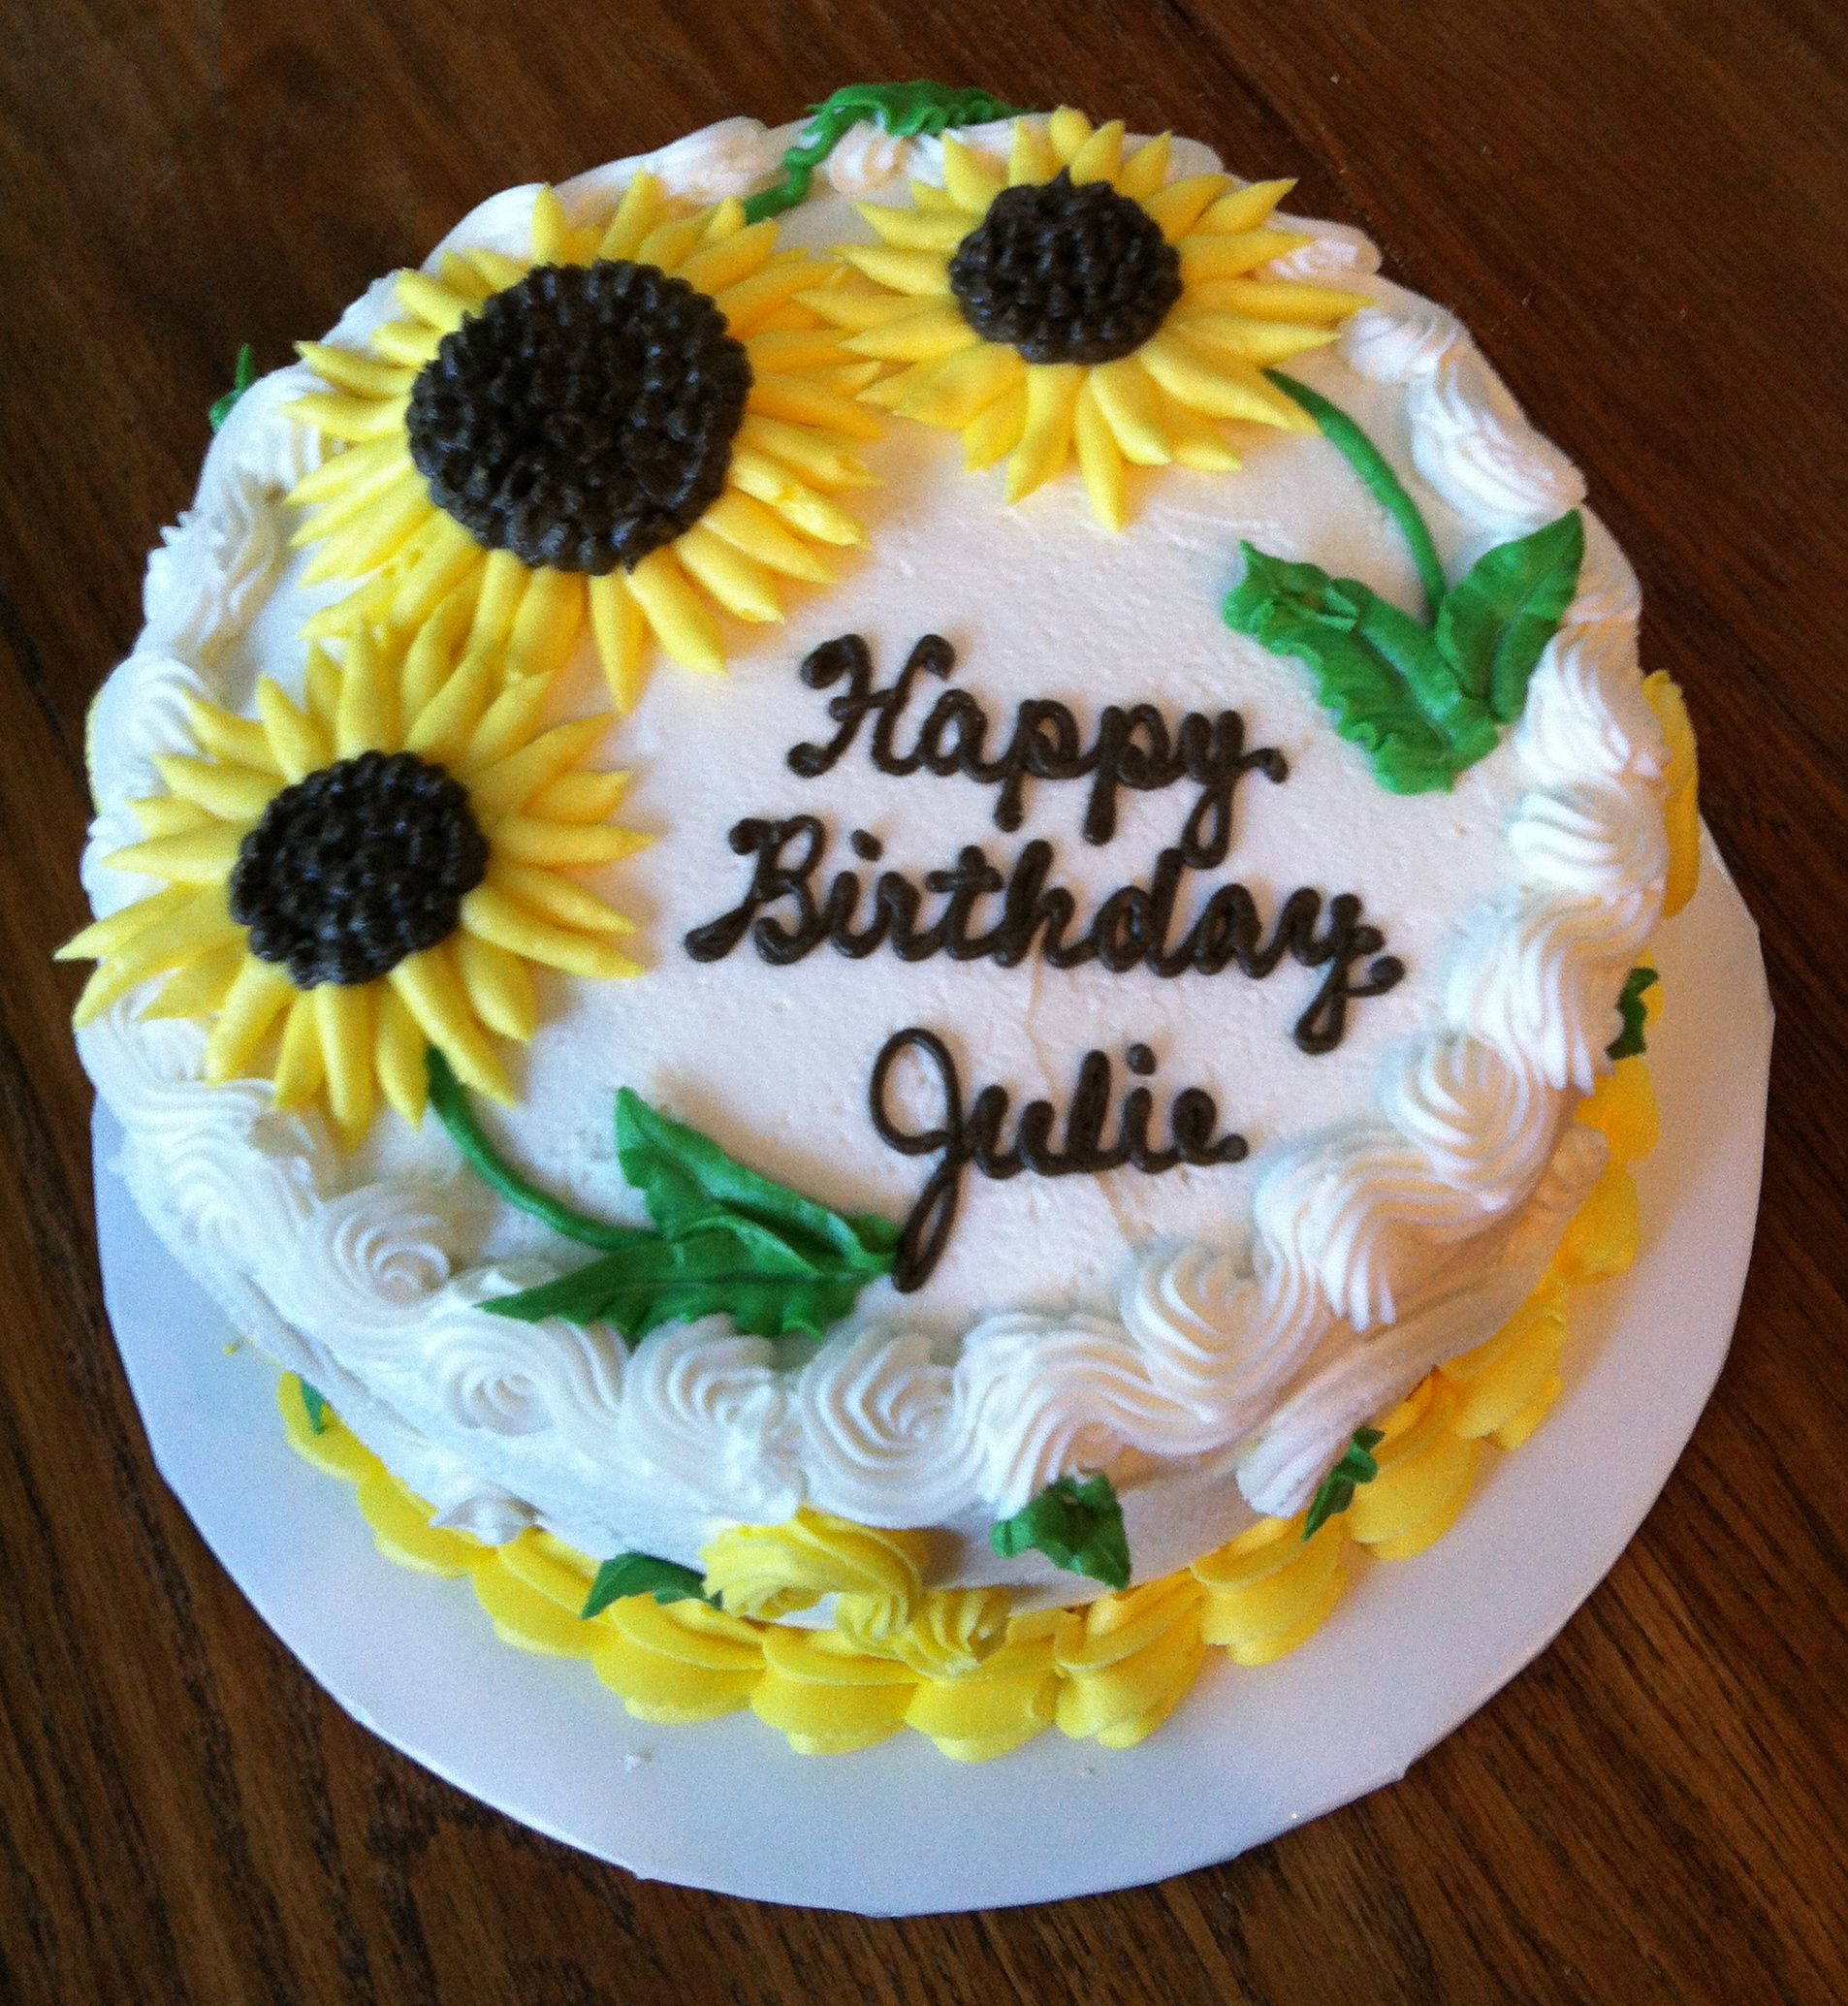 Astounding Sunflower Cake For Julie With Images Round Birthday Cakes Funny Birthday Cards Online Inifodamsfinfo